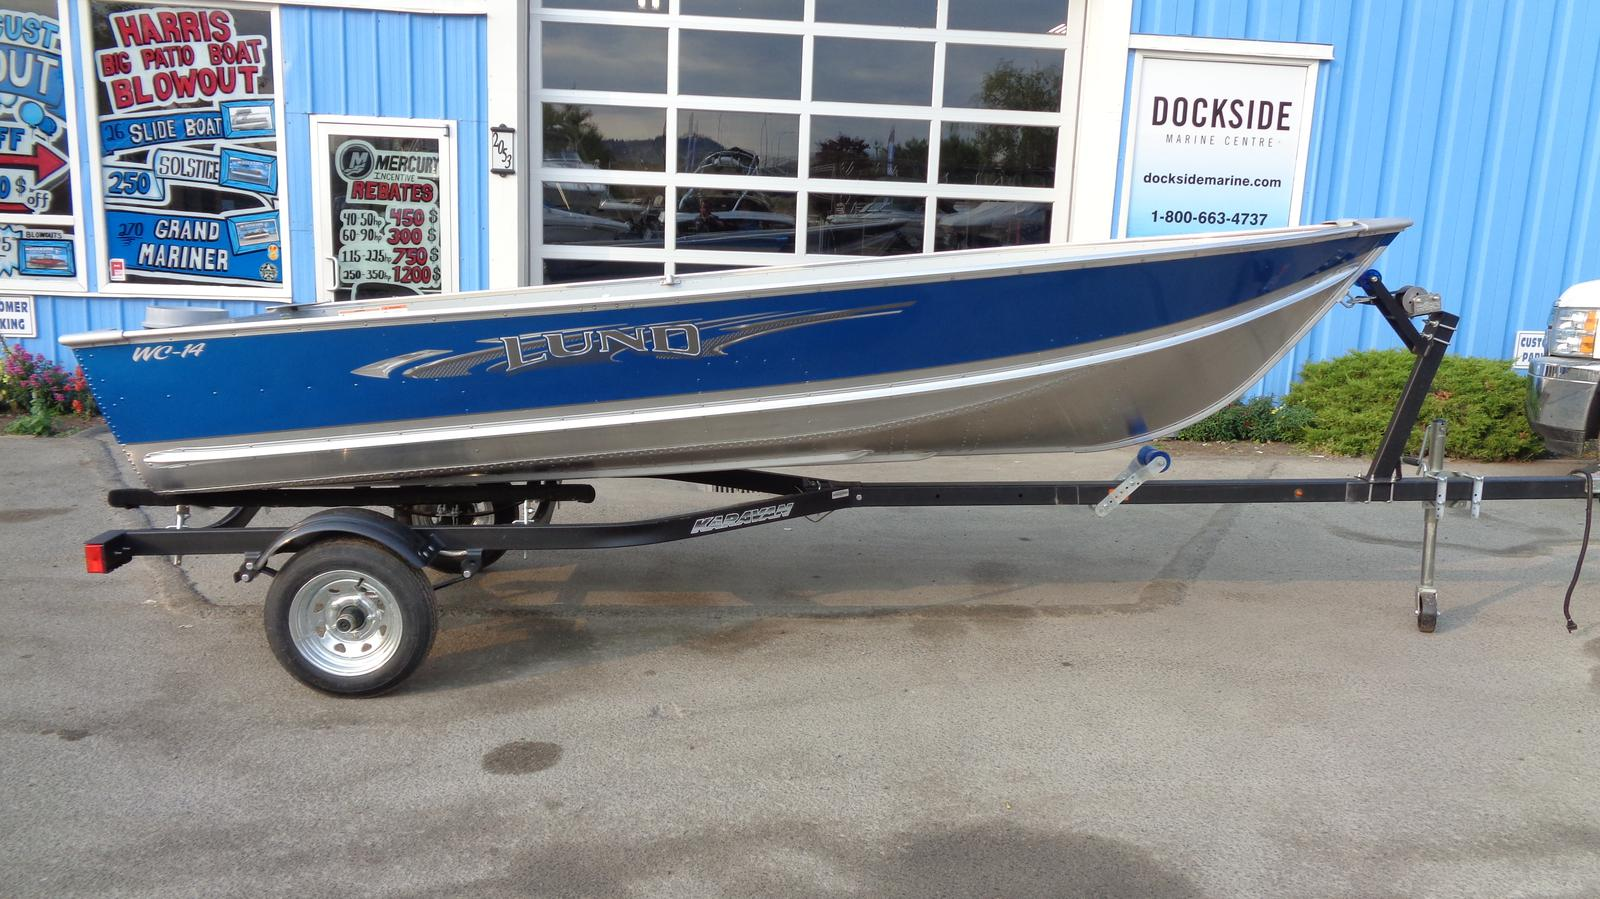 For Sale: 2018 Lund Wc 14 14ft<br/>Dockside Marine Centre, LTD.